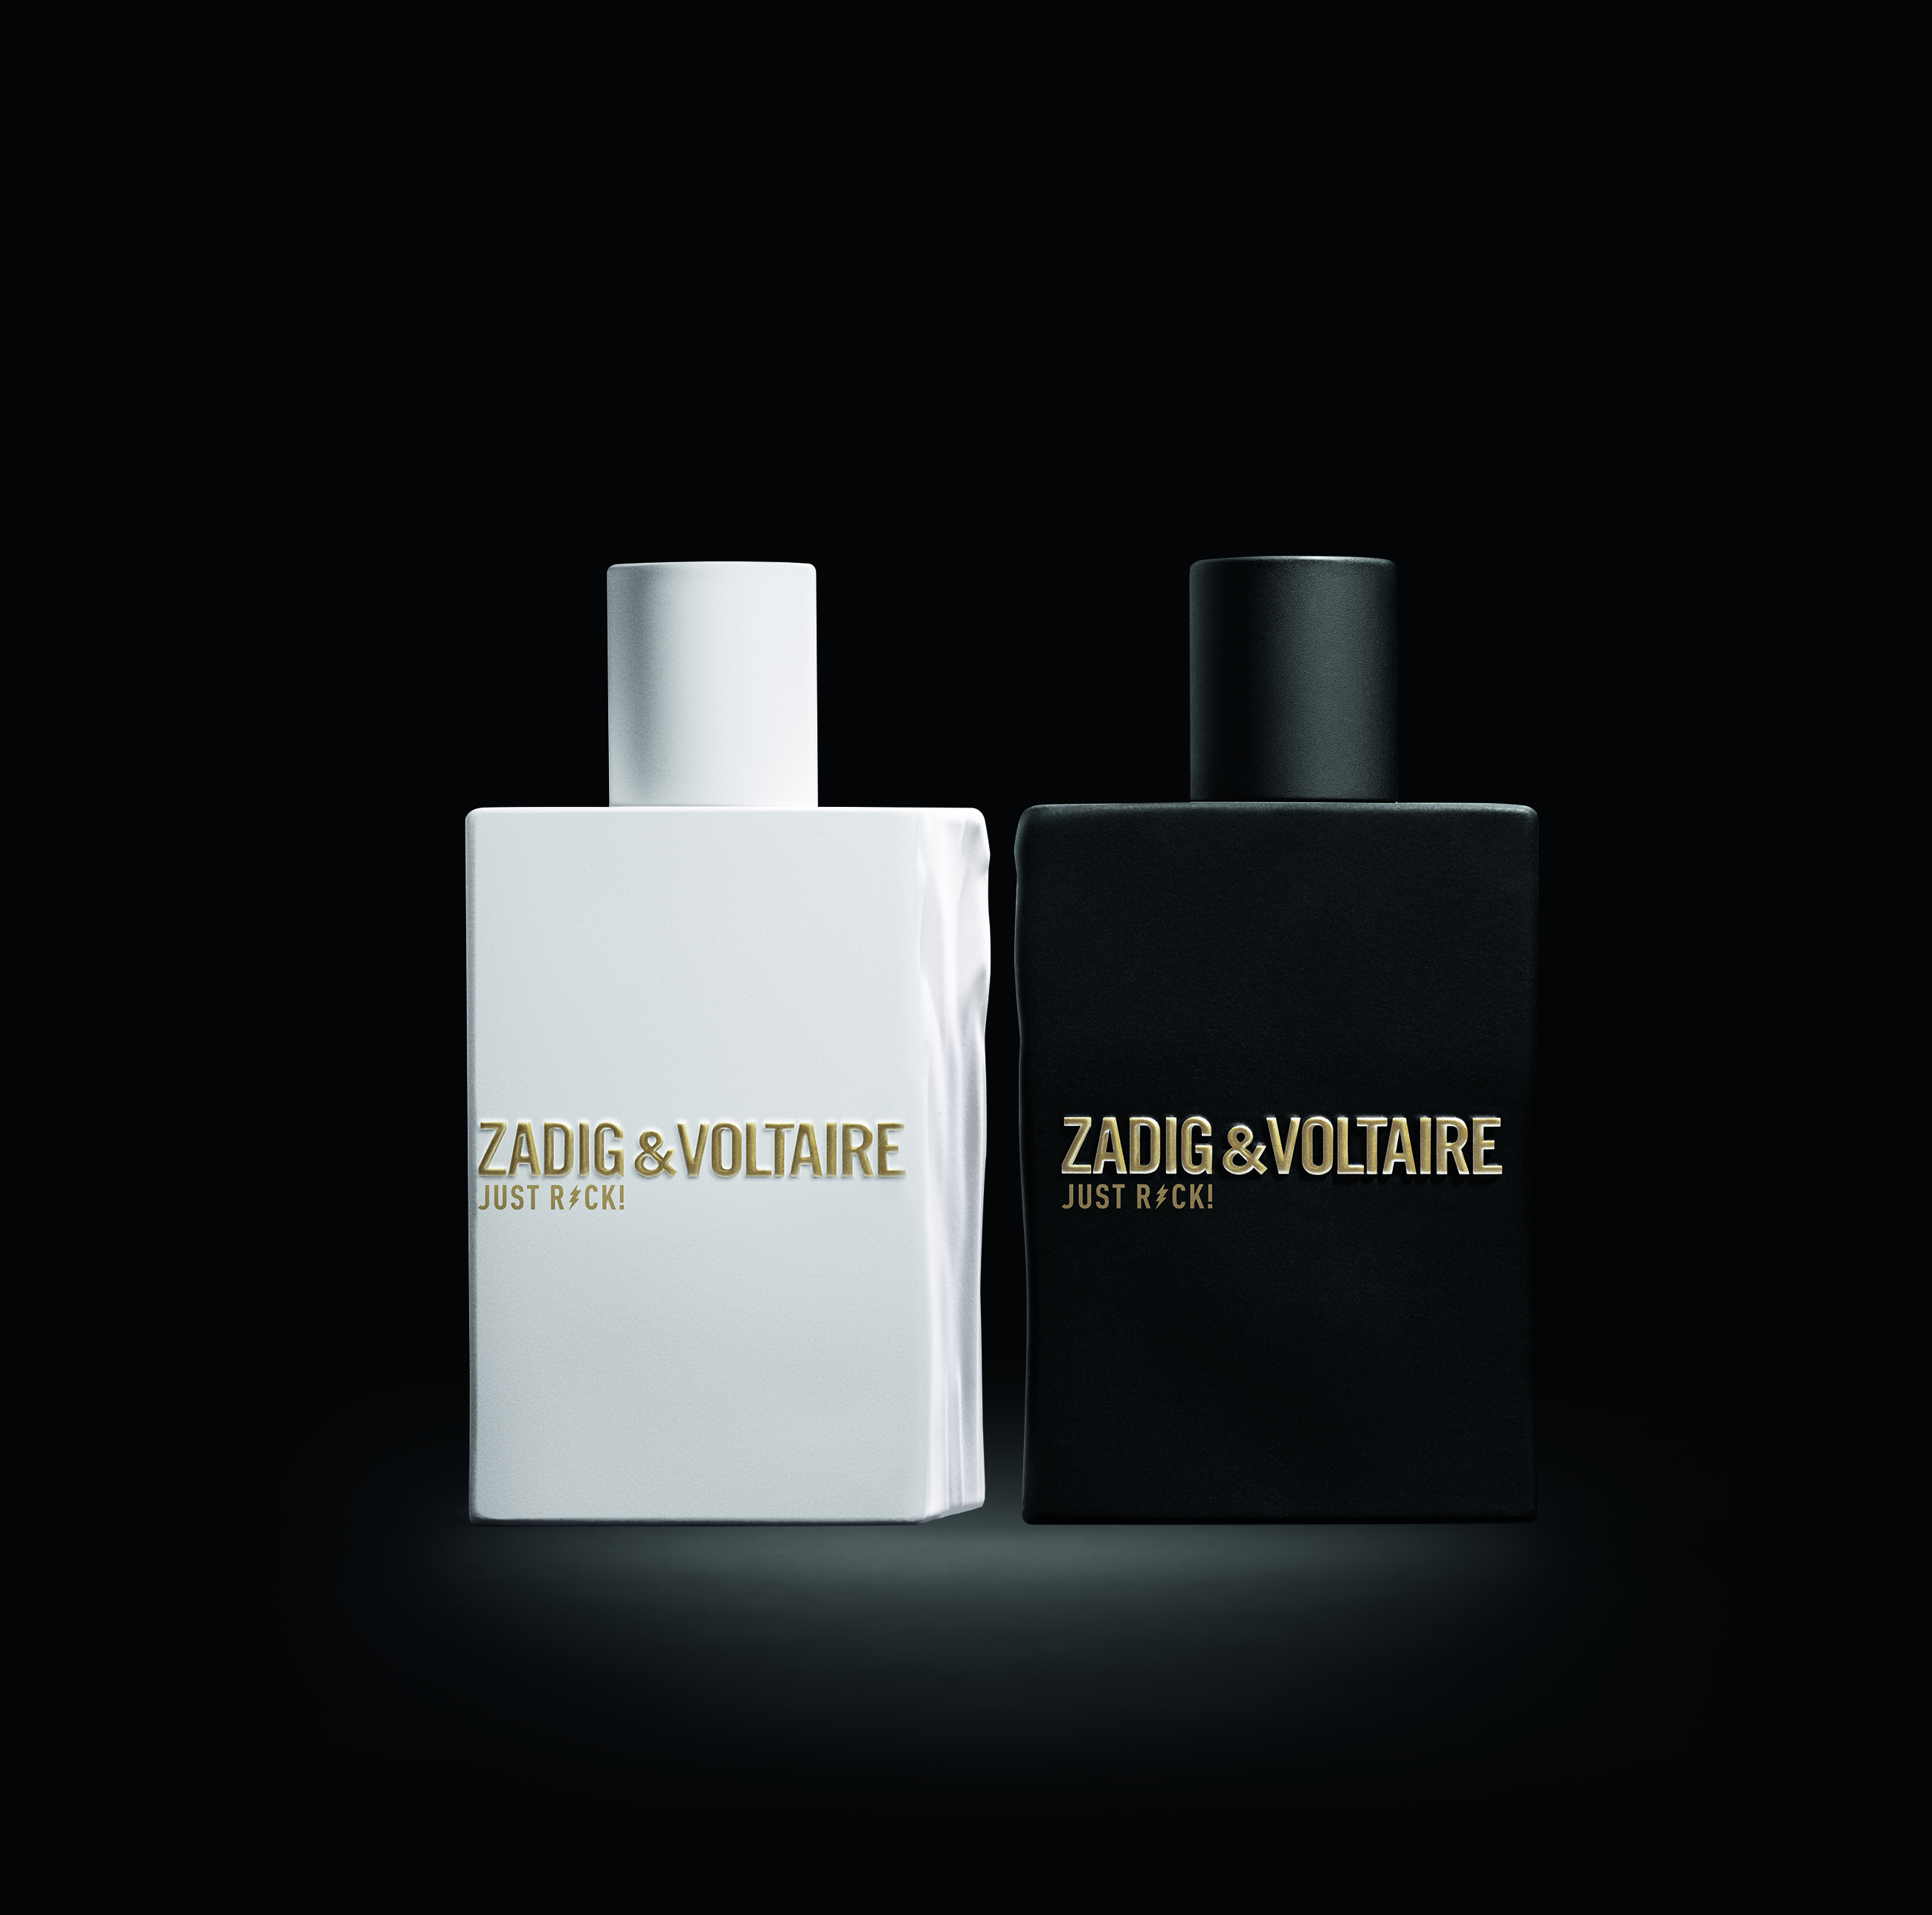 Z&V JUST ROCK 2017_EDP 50ml+EDT 50ml_black background_CMYK_22x22_300dpi